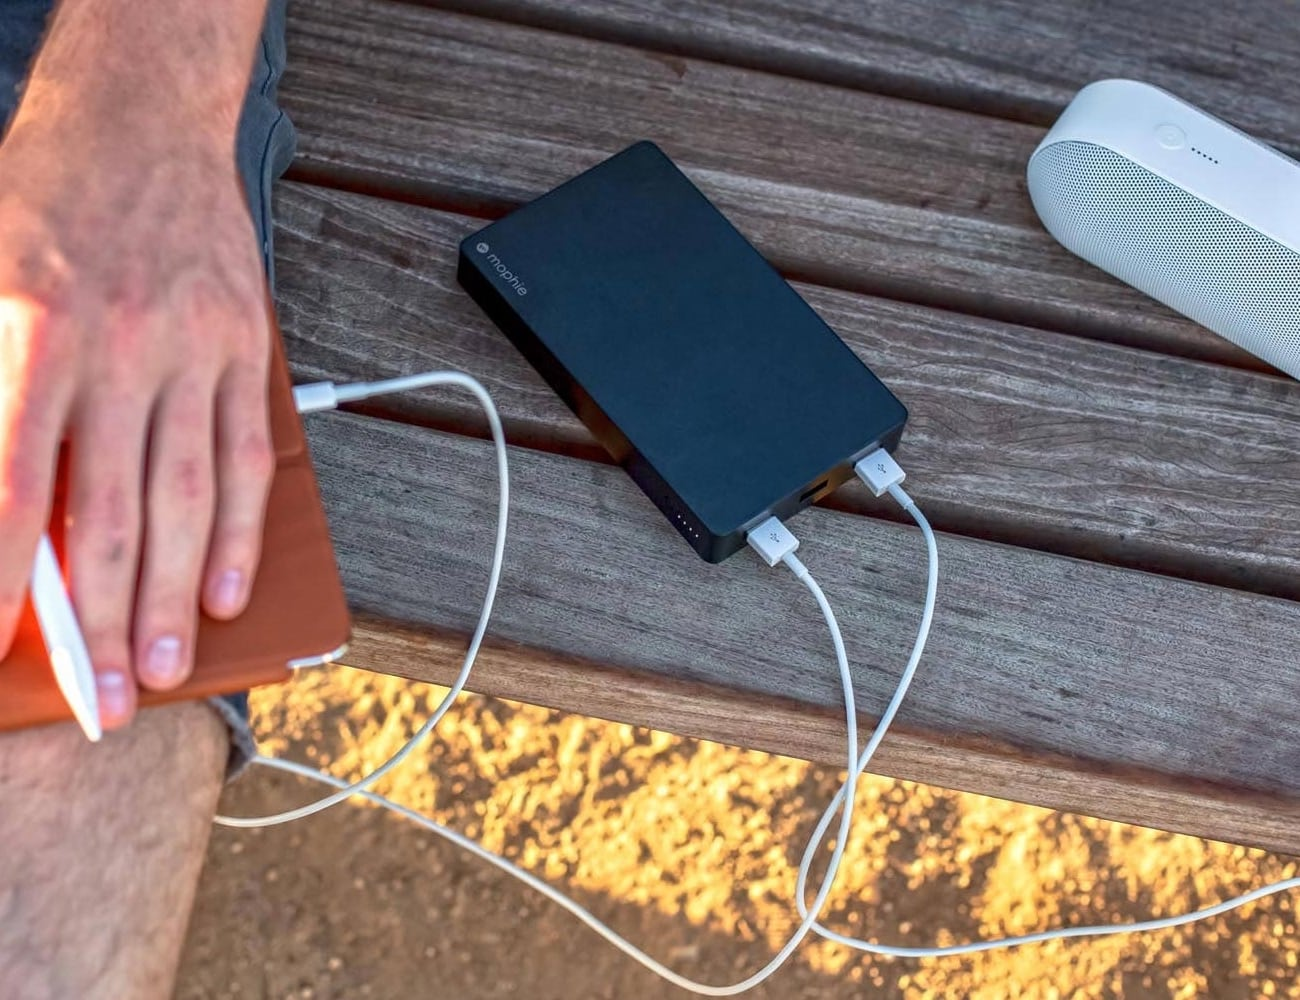 mophie powerstation XXL with Lightning connector Power Bank gives your iPhone 70 hours of battery life